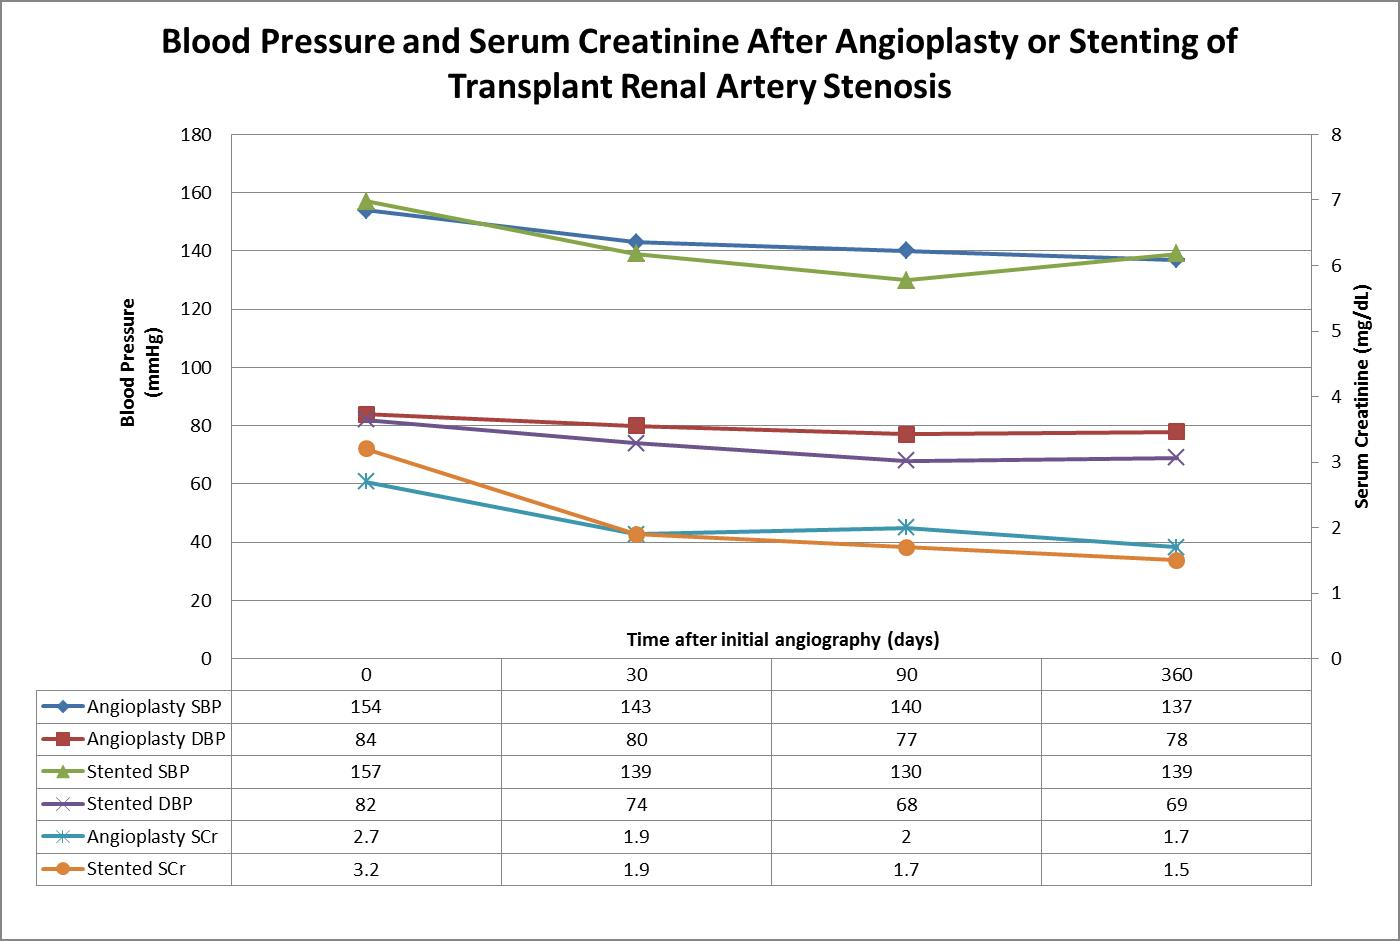 Angioplasty Versus Stent In The Treatment Of Transplant